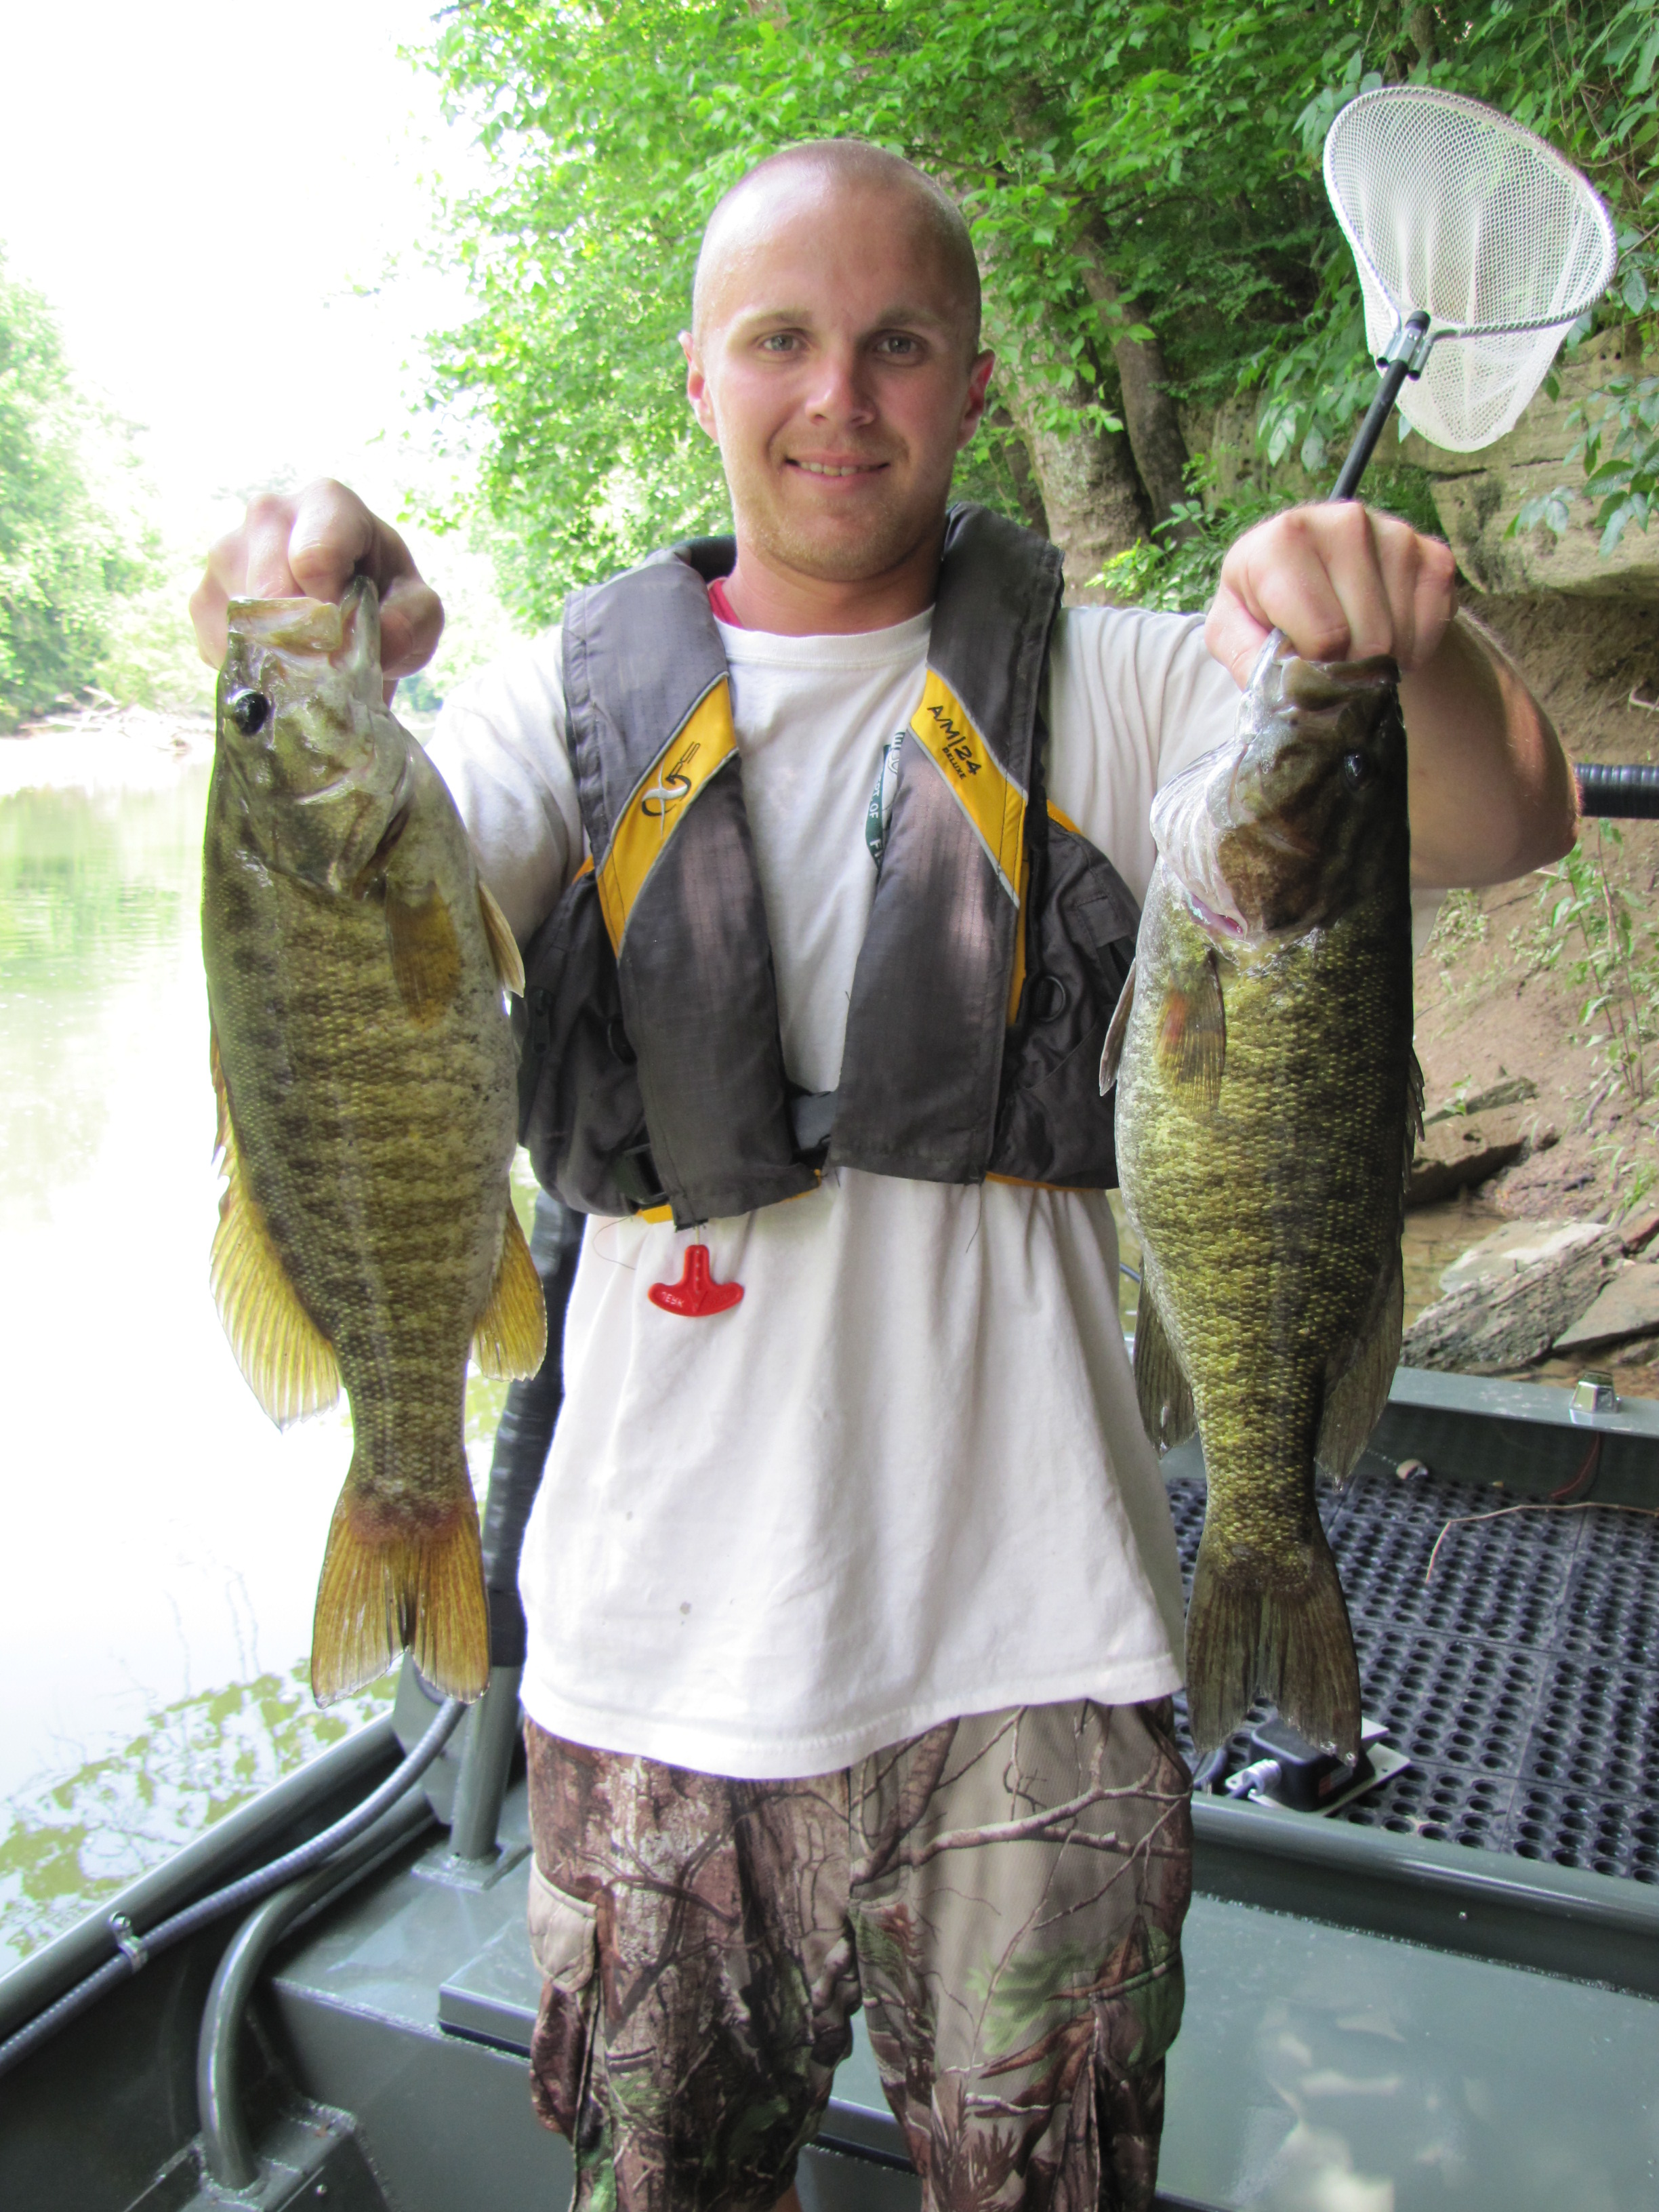 Cory Woosley shows off two, 17 inch smallmouth bass collected from the Green River near Greensburg, KY.